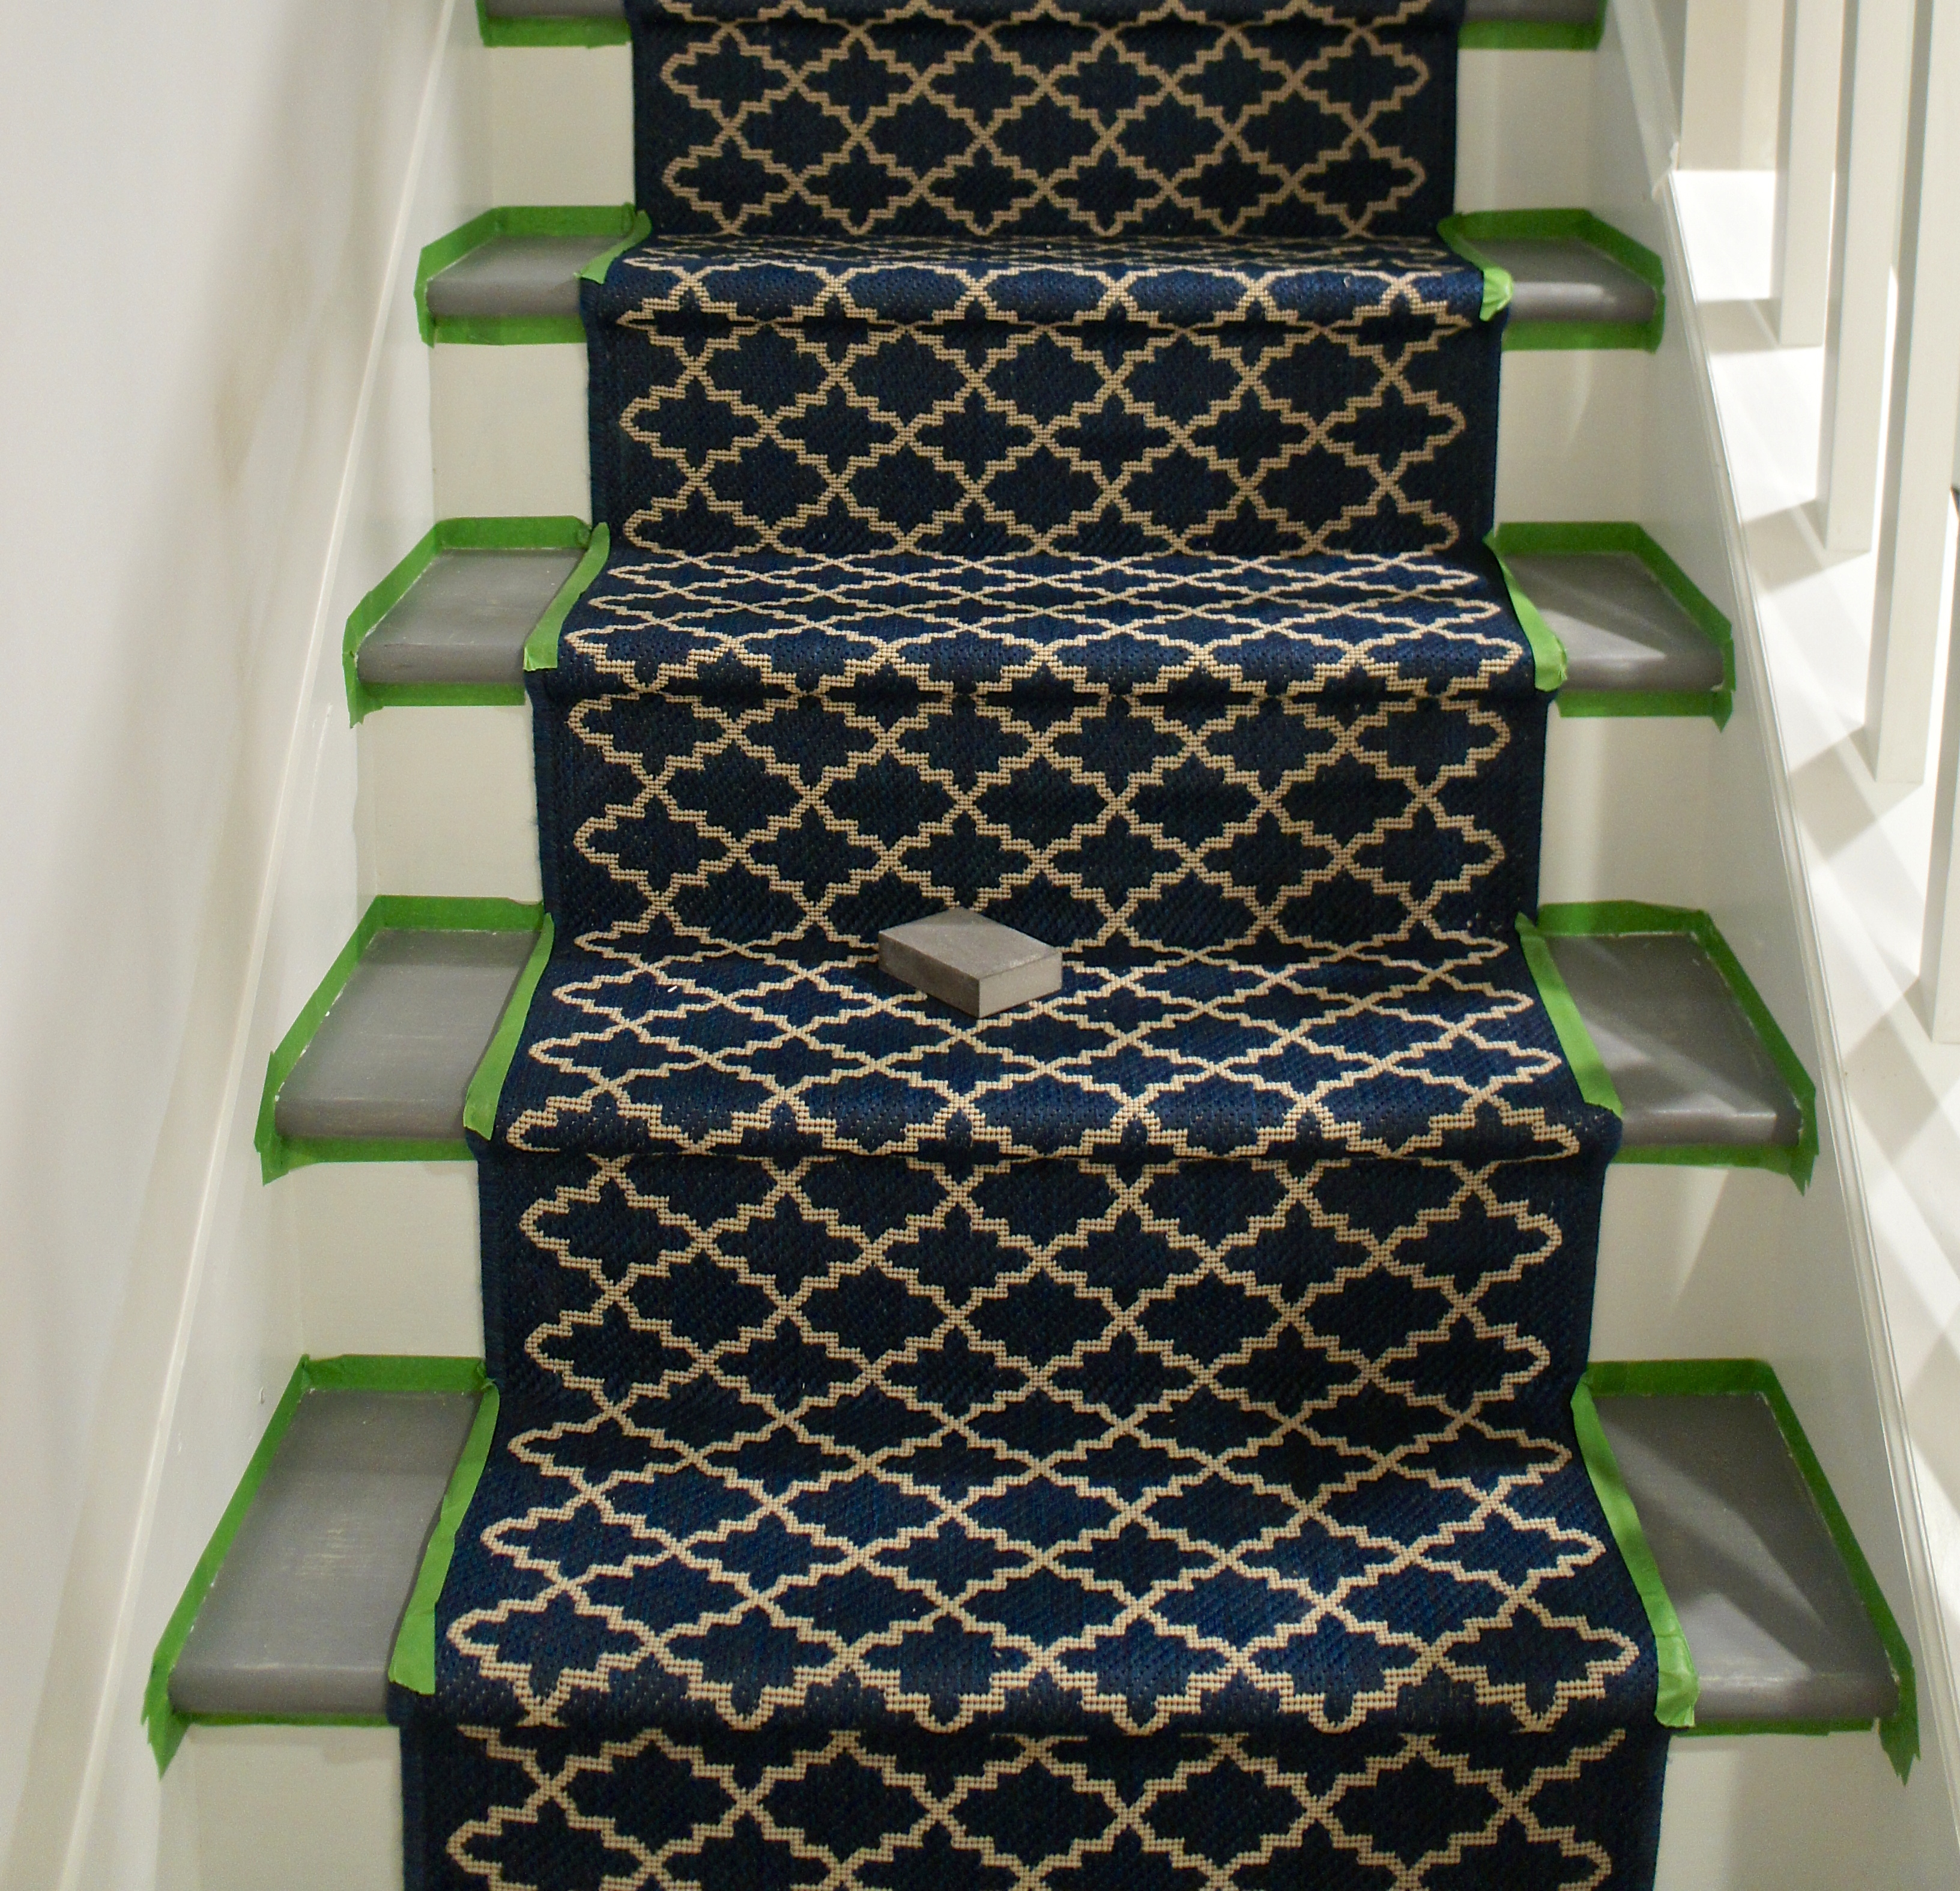 Indoor Outdoor Carpet Runner For Stairs Designs